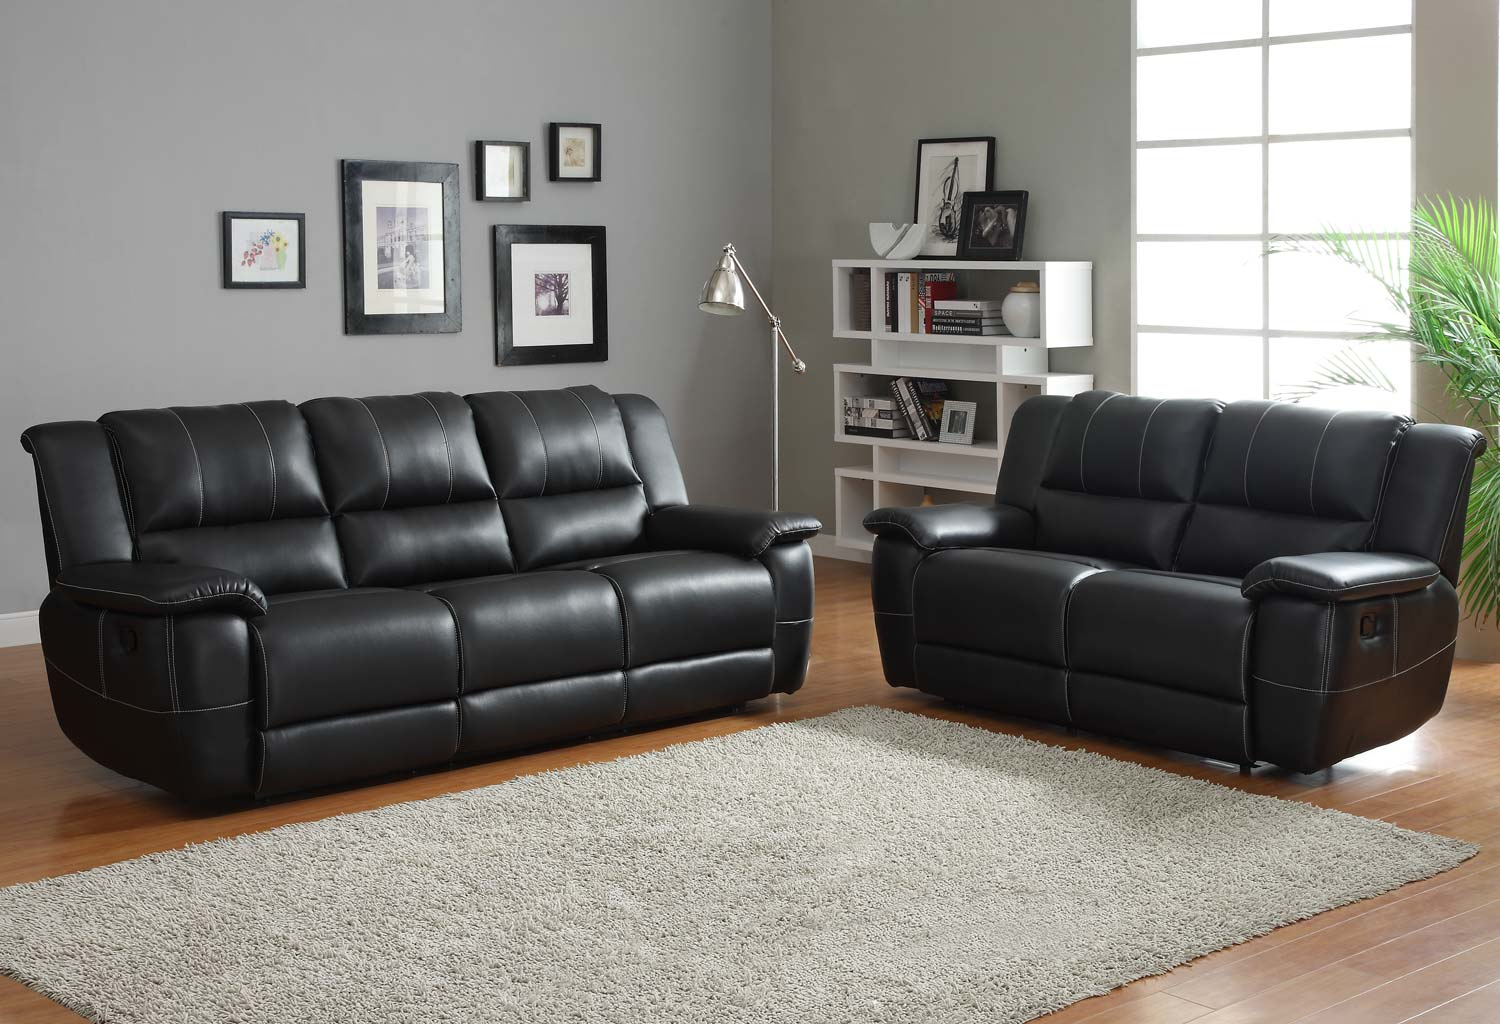 Homelegance Cantrell Reclining Sofa Set Black Bonded Leather Match U9778blk 3 Homelement Com